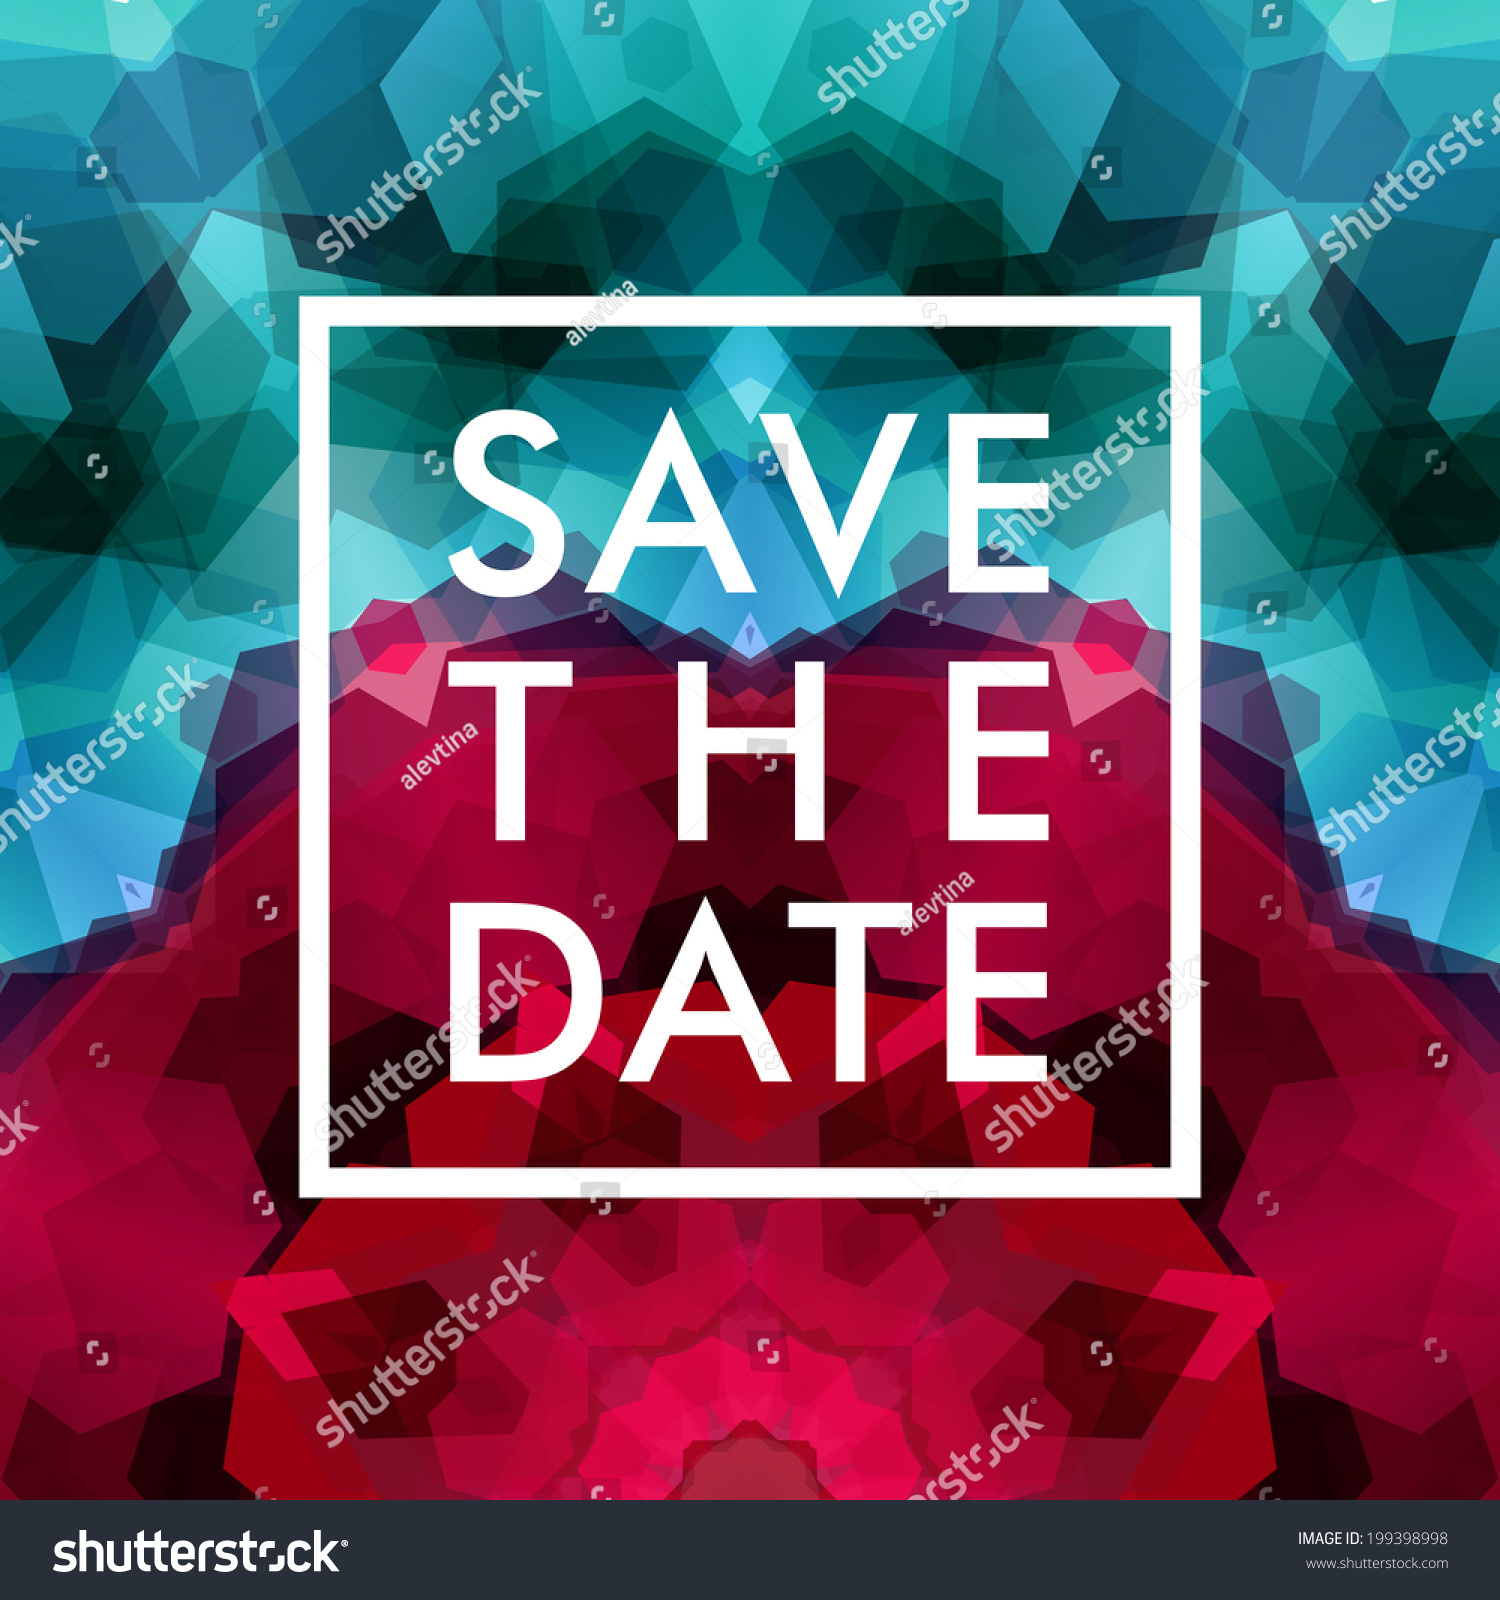 Save Date Personal Holiday Wedding Invitation Stock Vector 199398998 ...